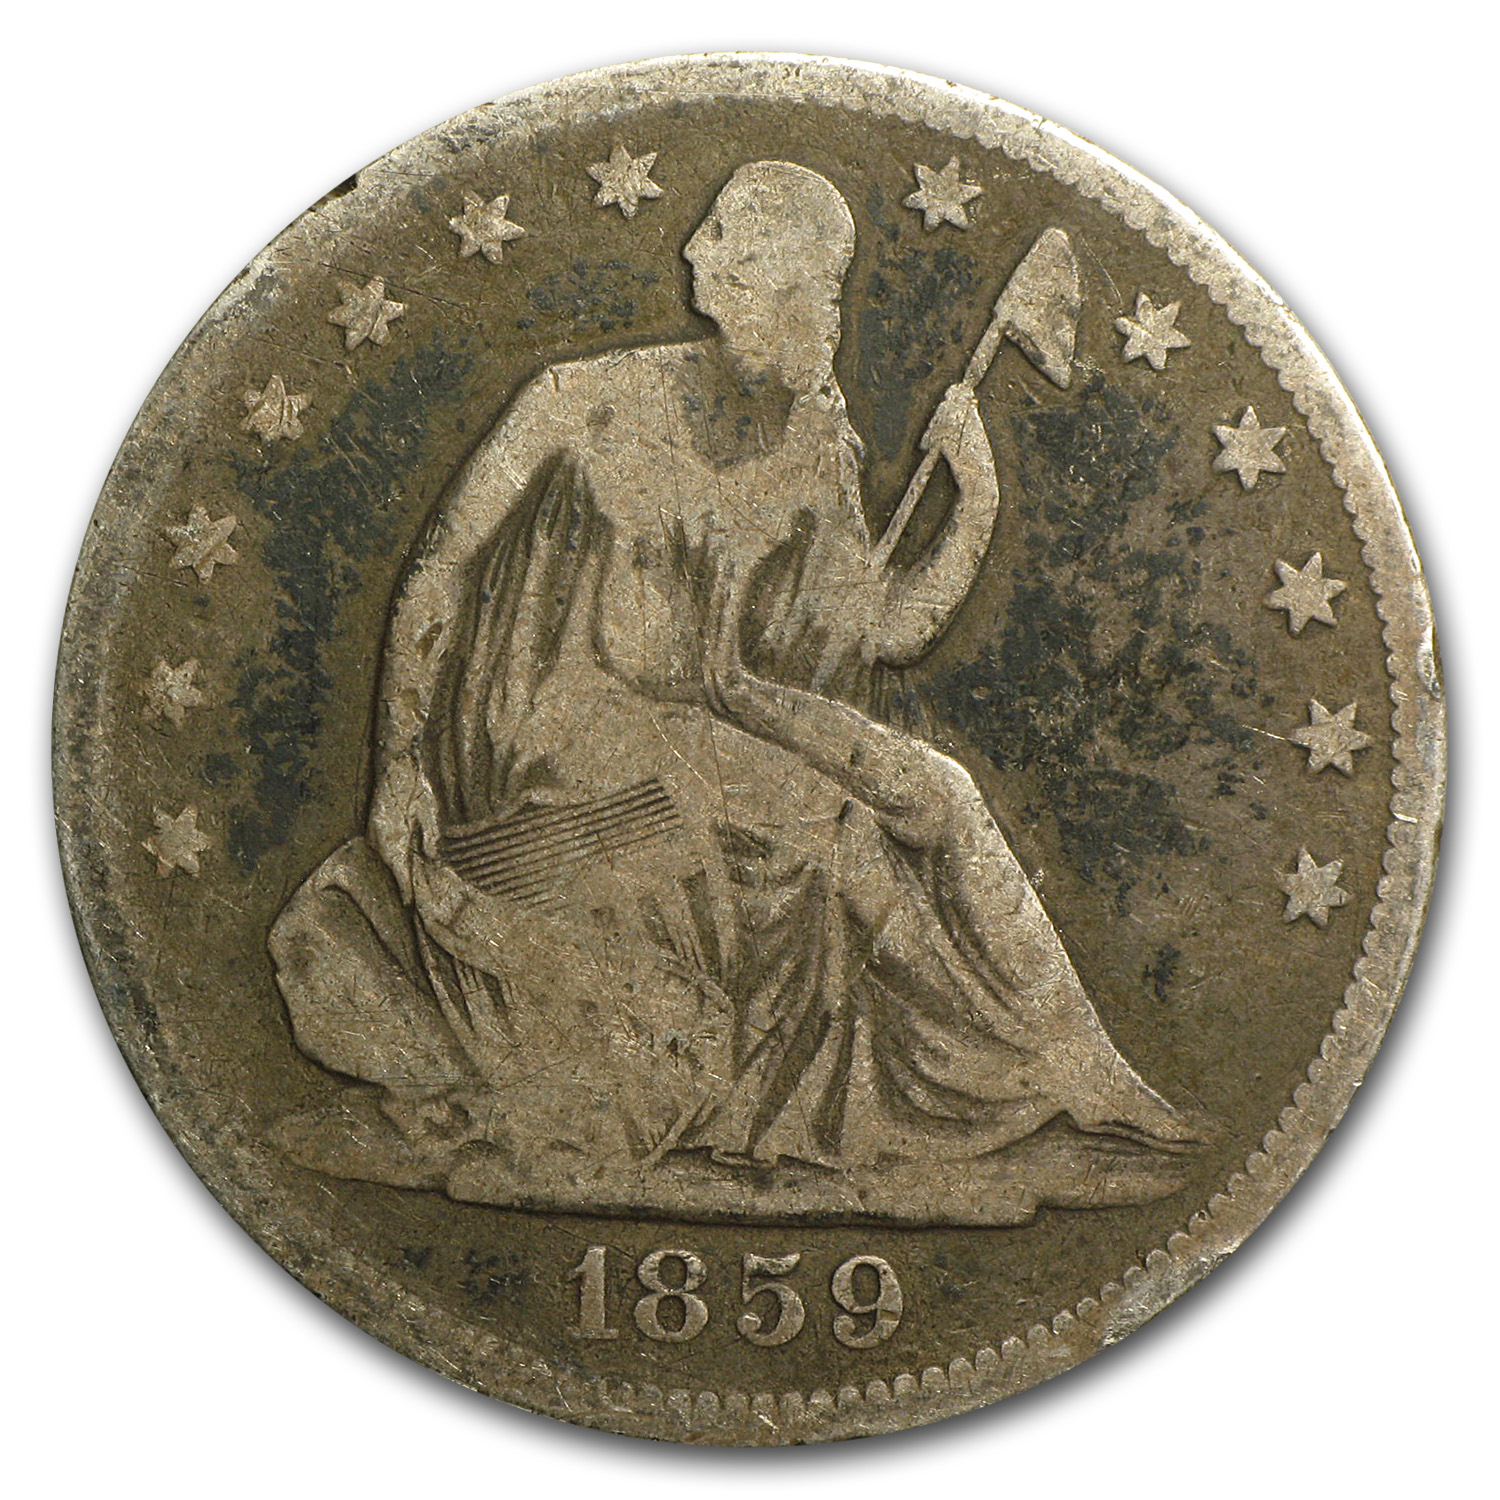 1859 Liberty Seated Half Dollar VG